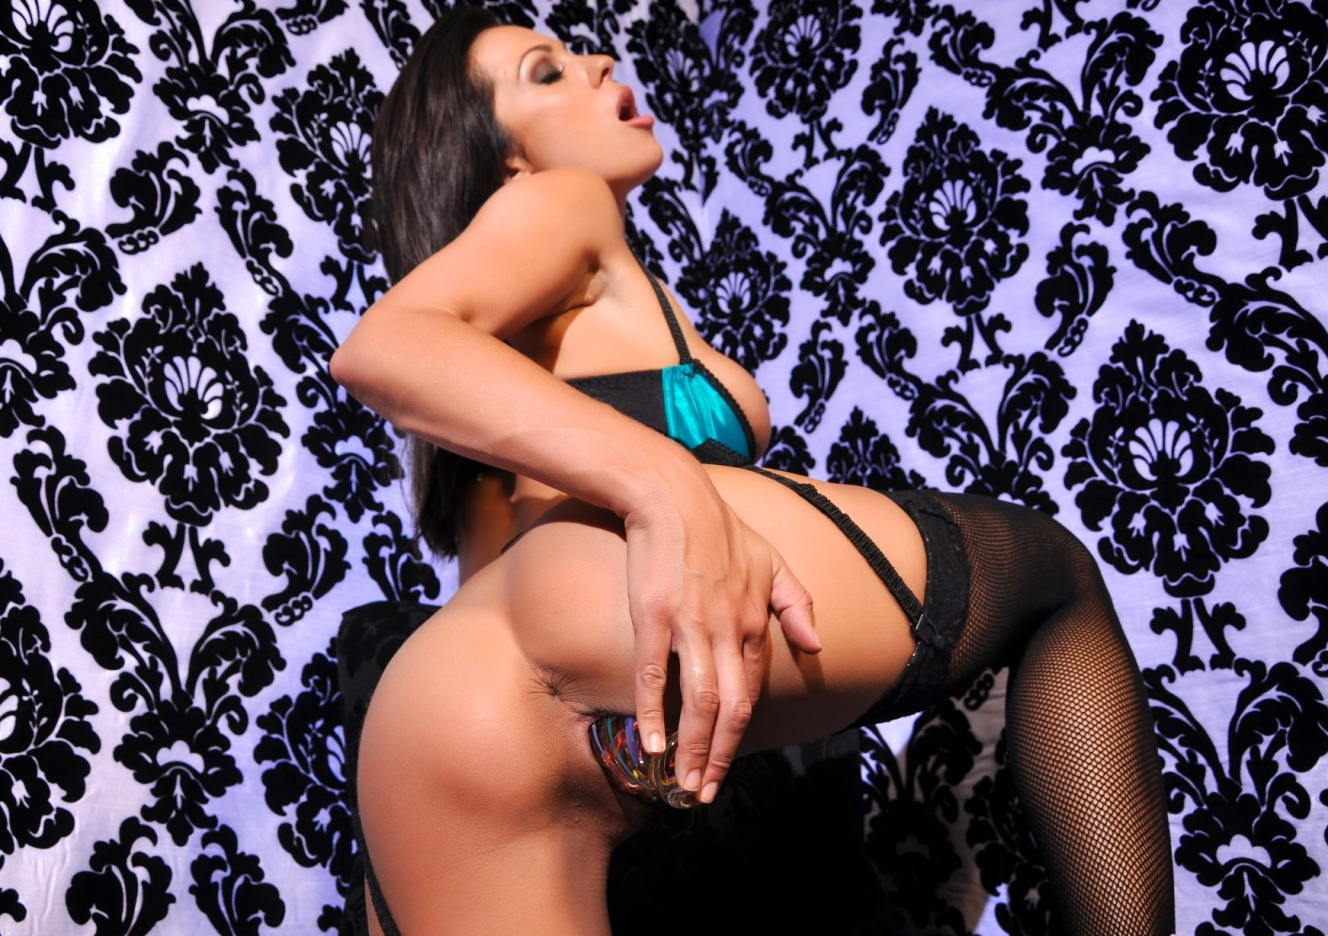 content/Kirsten_Price_Perfect_Tease/2.jpg